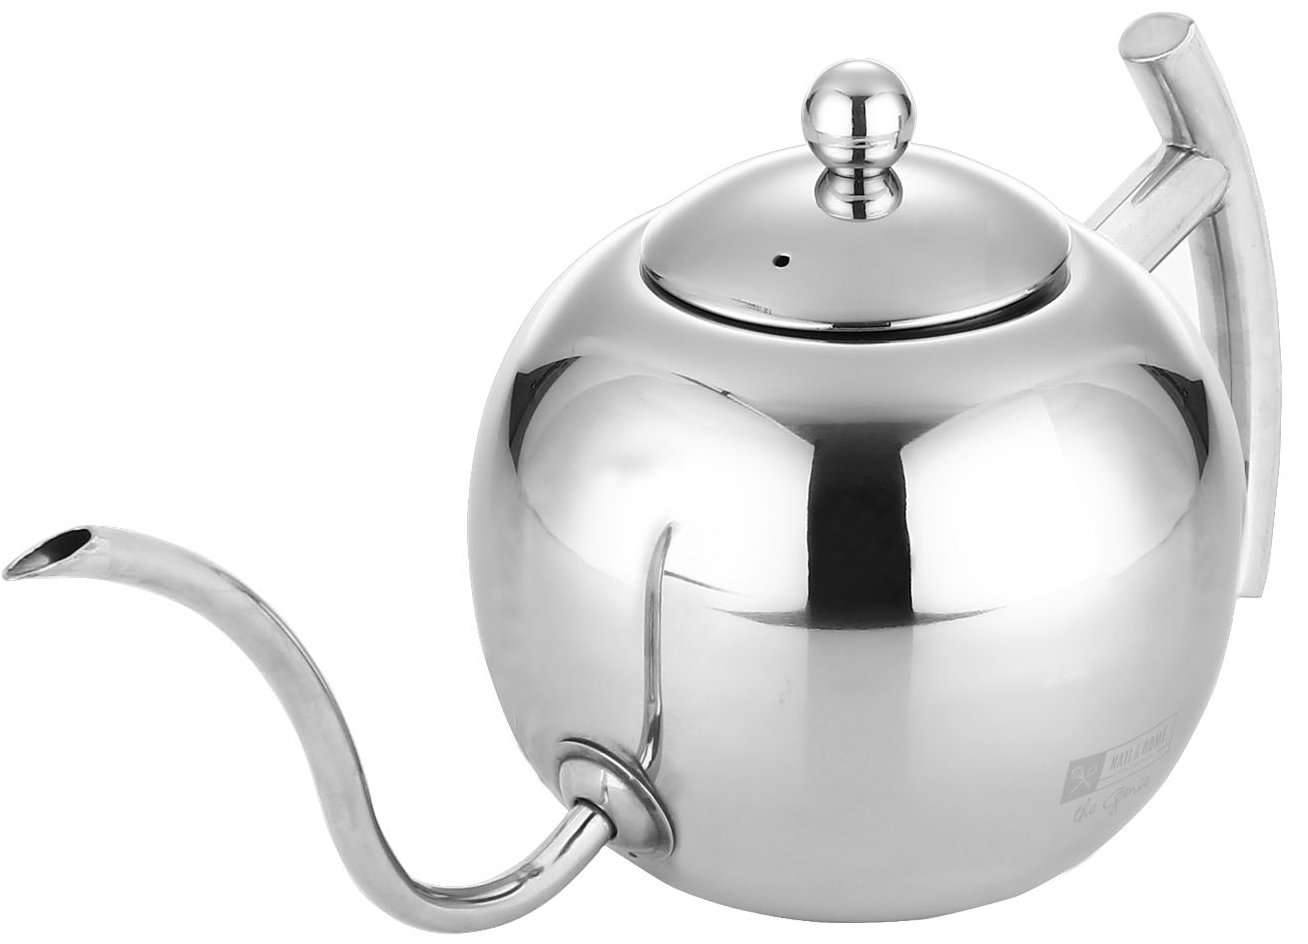 Stainless Steel Pour Over Drip Coffee Kettle - Built In Tea Infusion For Tea Lovers - Induction Stove Top Compatible - 1.1 L / 4 1/2 Cup